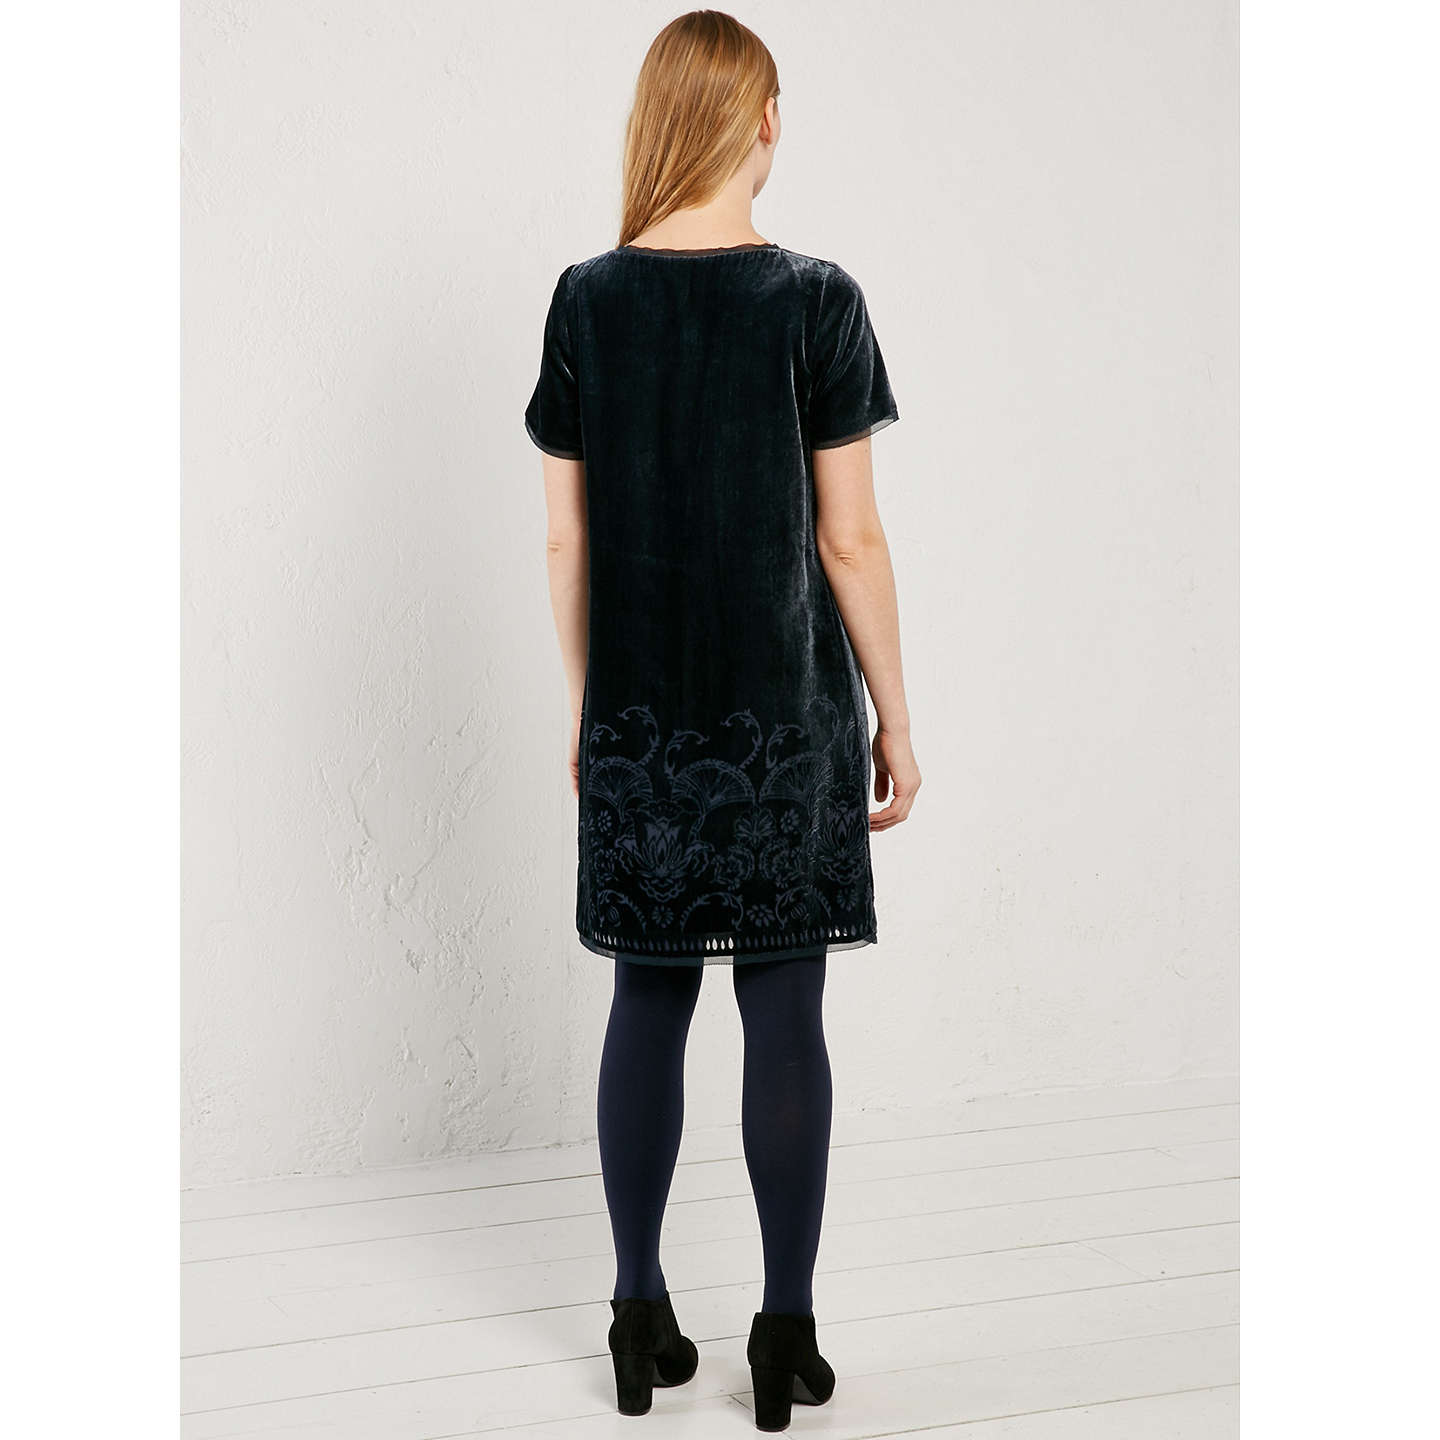 ba2acffa7cdd ... BuyWhite Stuff Harper Velvet Dress, Eccentric Blue, 6 Online at  johnlewis.com ...